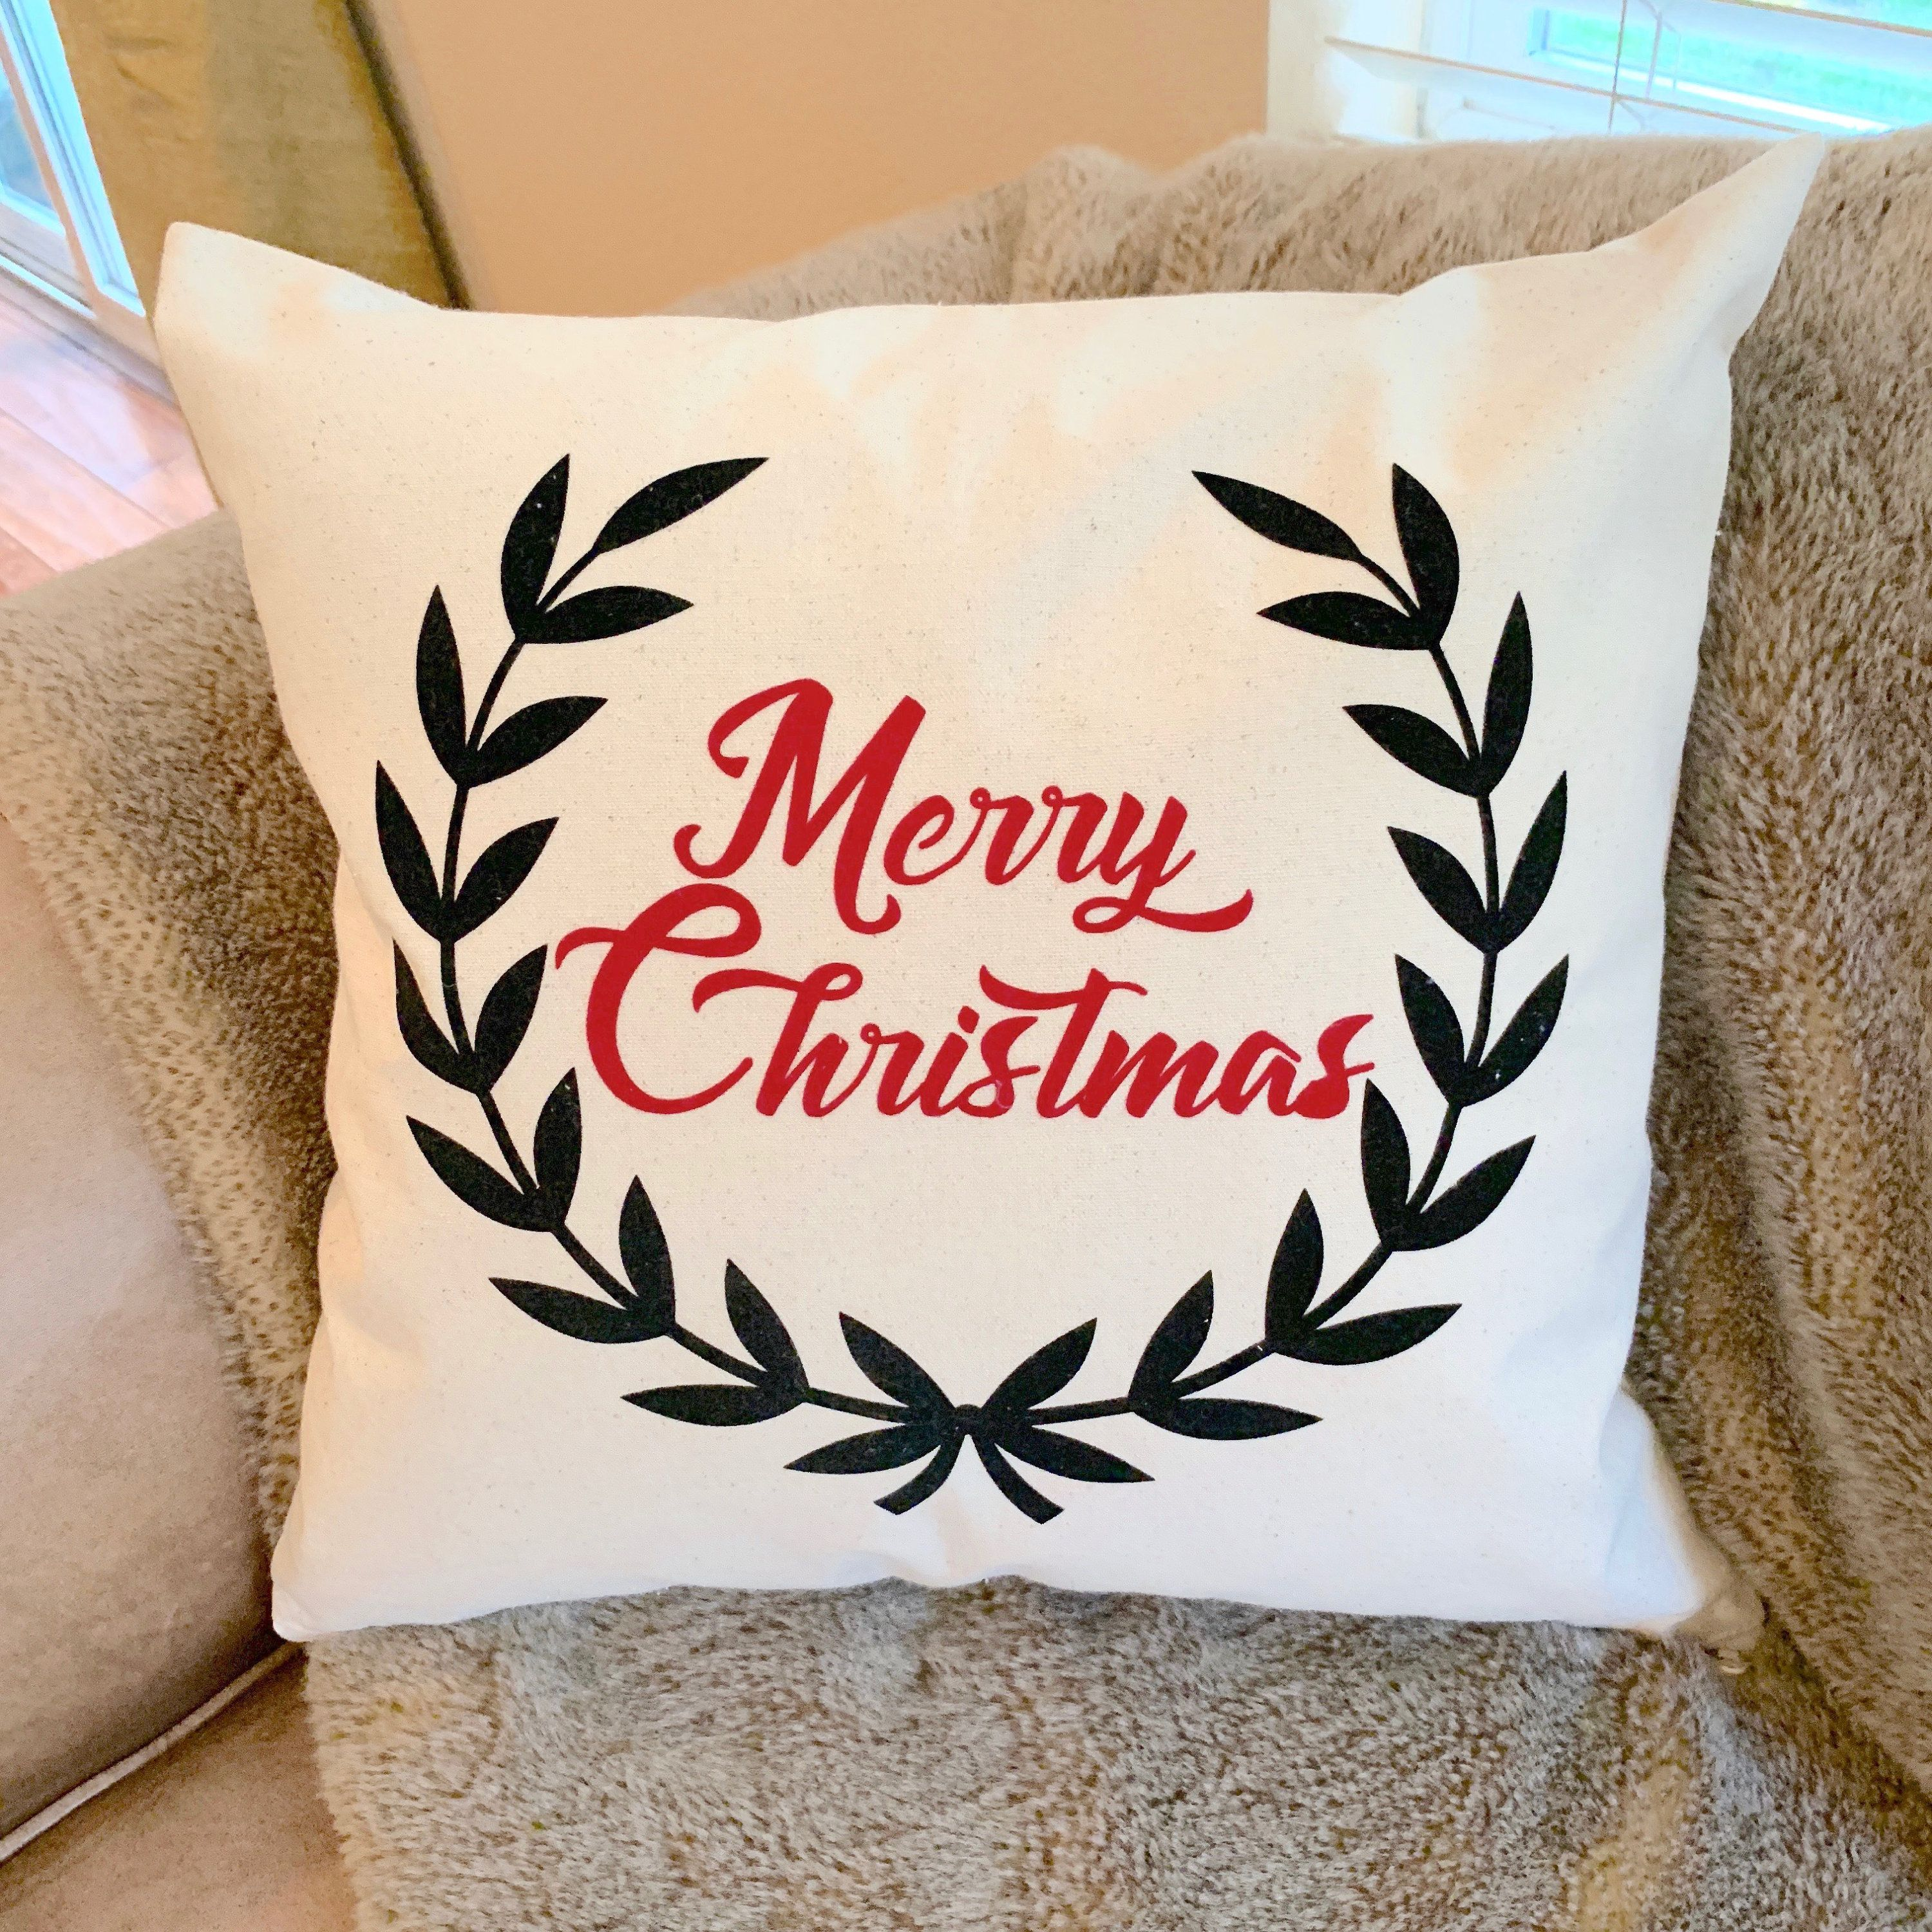 Natural Cotton Canvas Holiday Pillow Cover, Merry